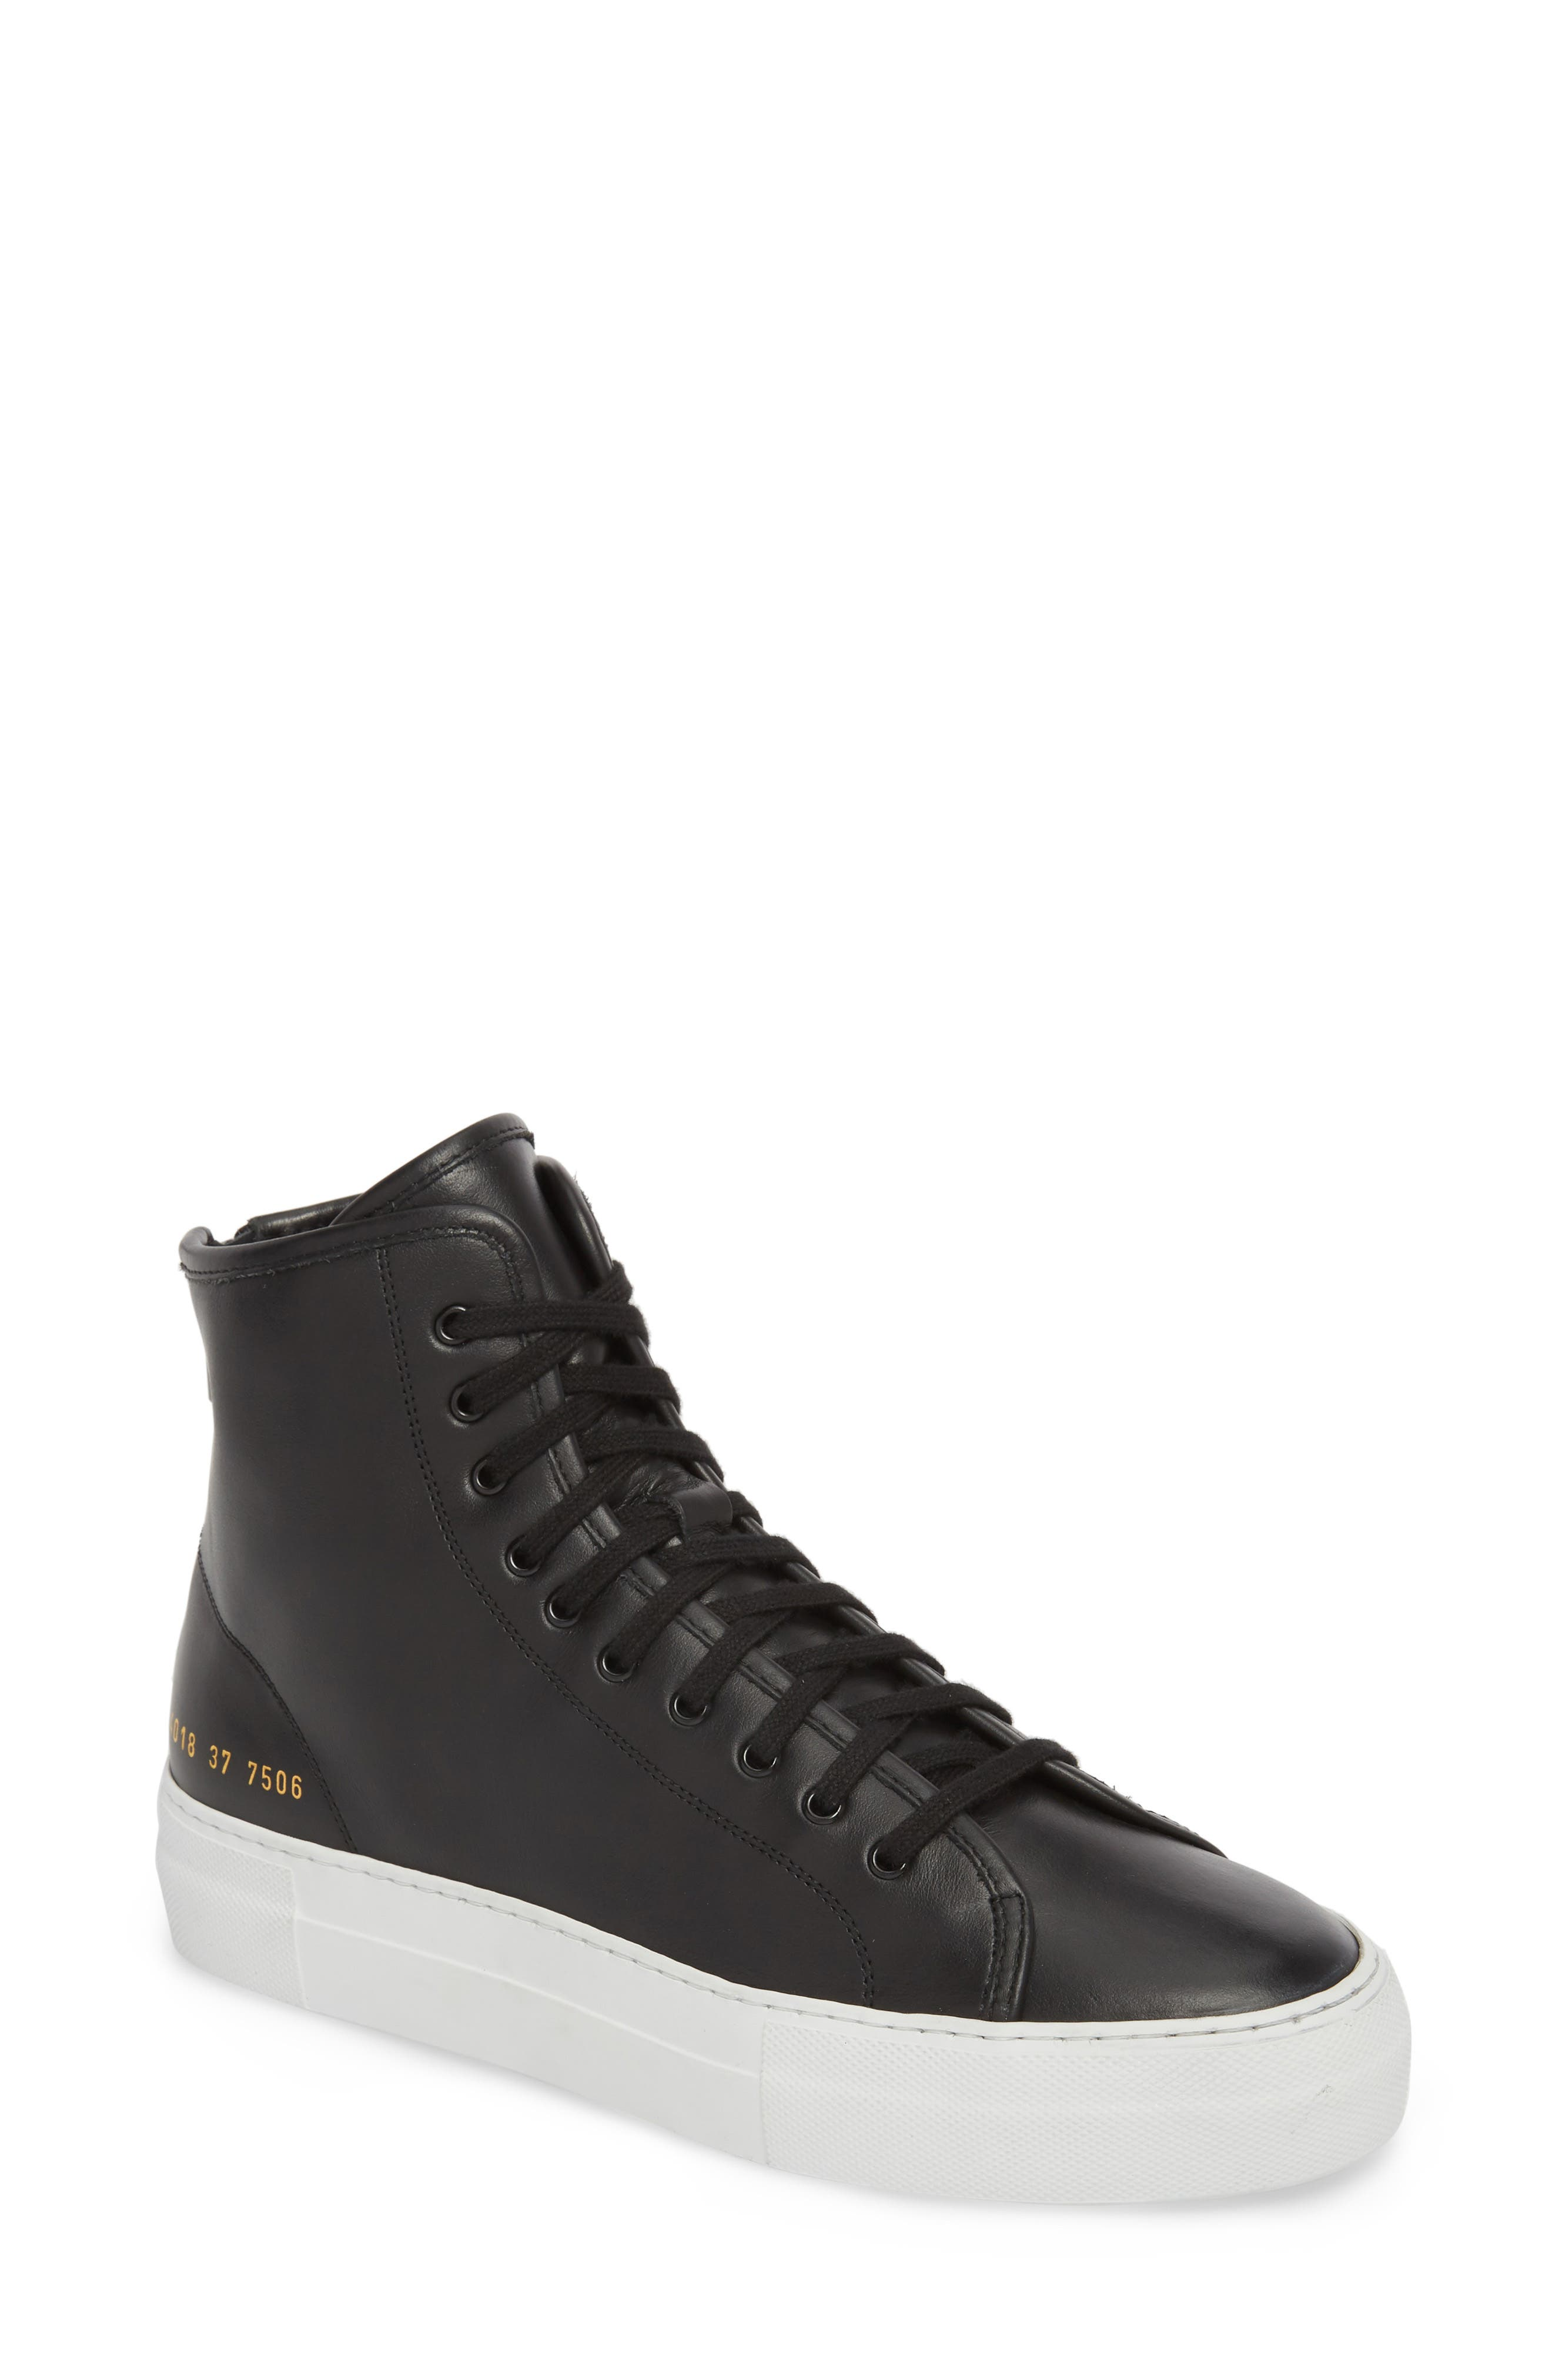 COMMON PROJECTS, Tournament High Super Sneaker, Main thumbnail 1, color, BLACK/ WHITE